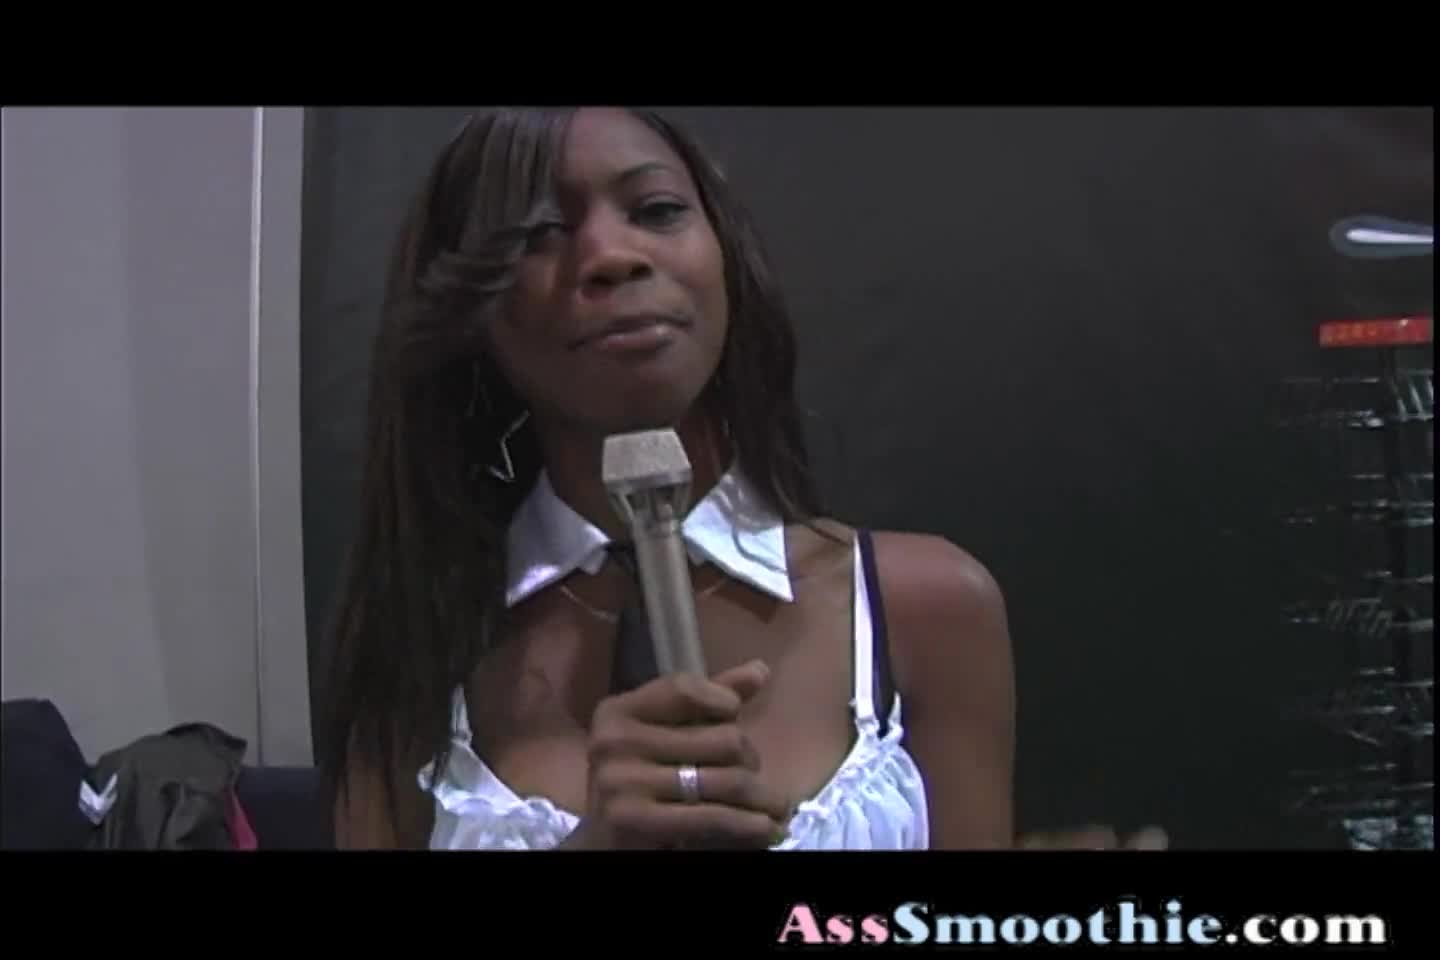 Free Ass Smoothie Porn Video Downloads 59